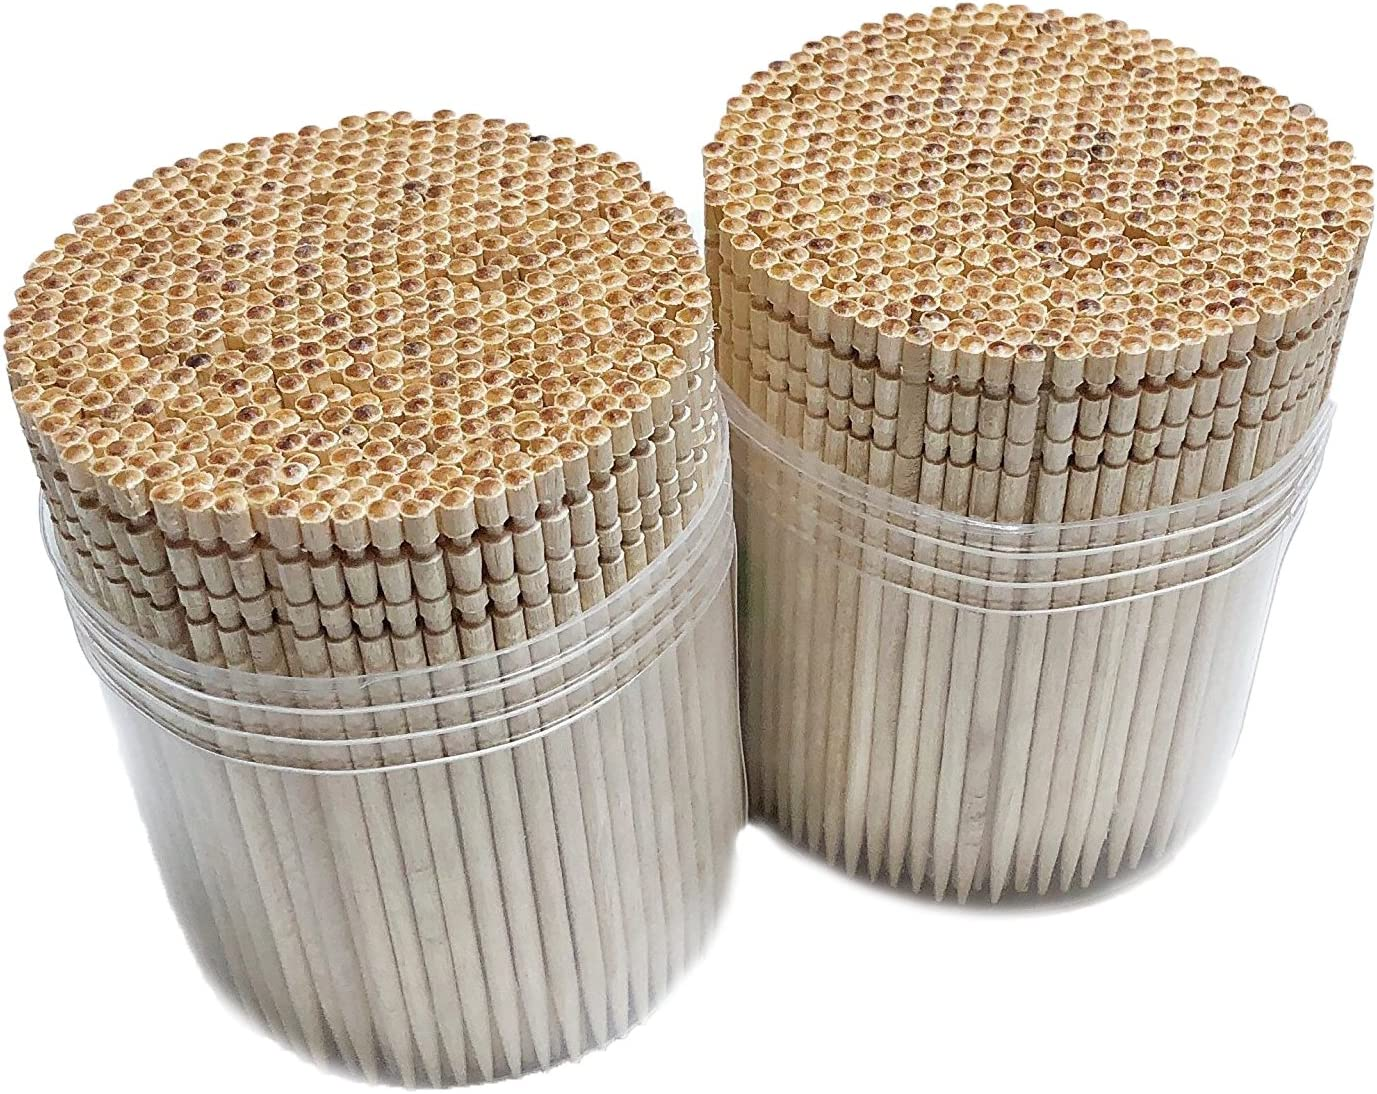 Makerstep Wooden Toothpicks 1000 Pieces Ornate Handle, Sturdy Cocktail Safe Large Round Storage Box 2 Packs of 500 Party Appetizer Olive Barbecue Fruit Teeth Cleaning Art Crafts